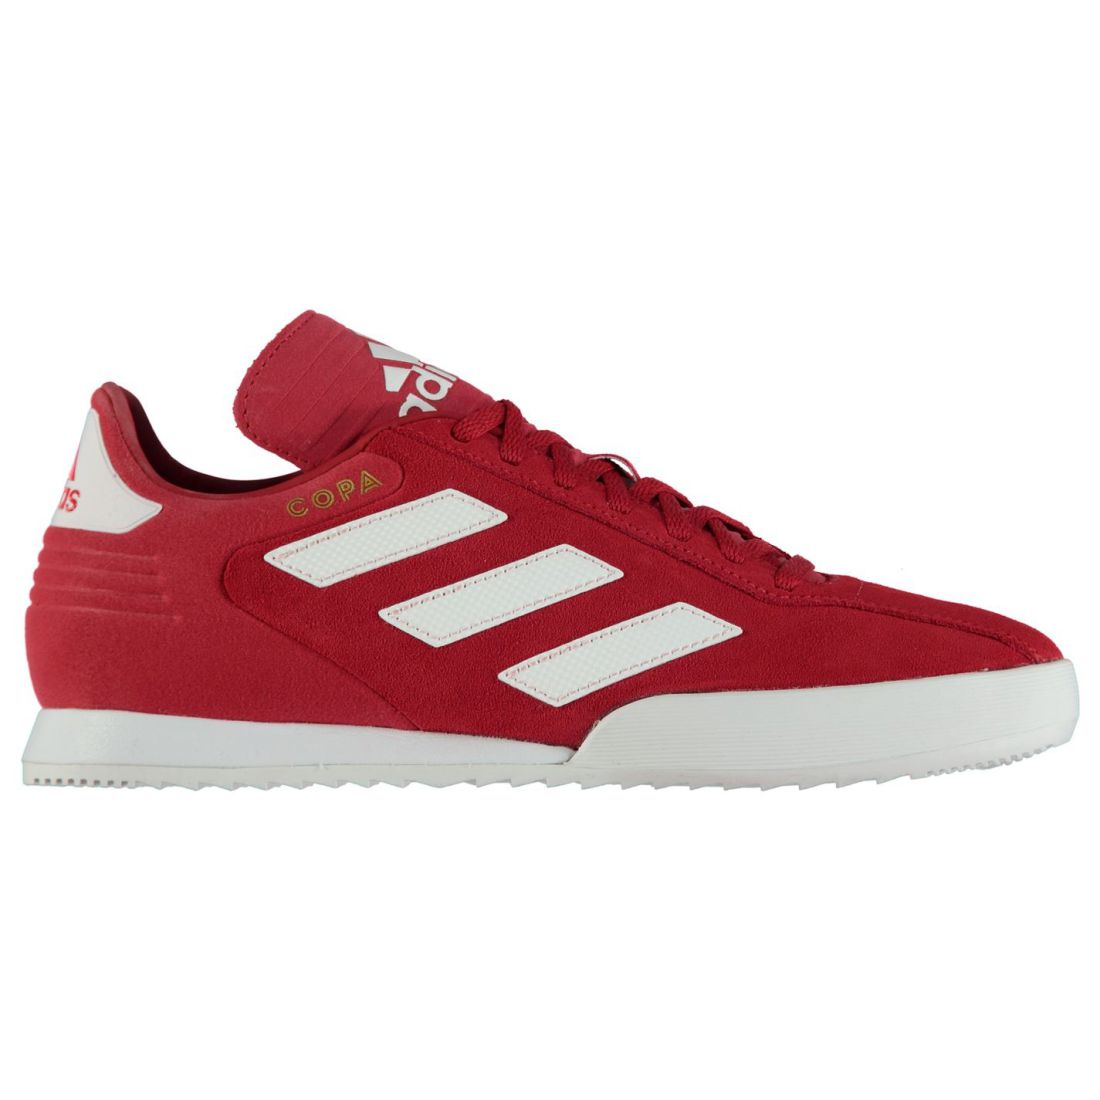 brand new d8b1d 34d67 adidas Copa Super Suede Sneakers Mens Gents Laces Fastened Padded Ankle  Collar